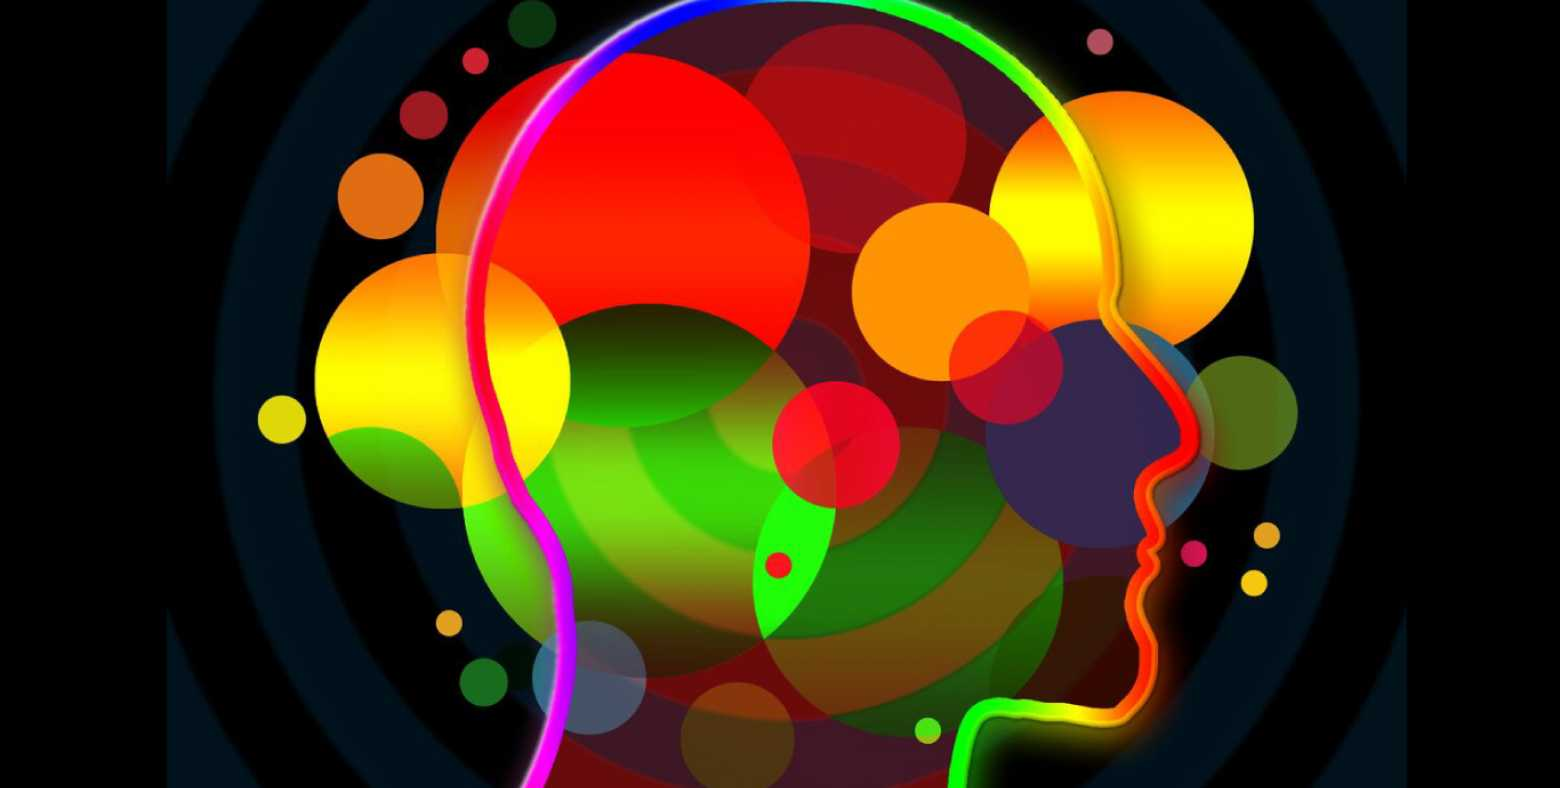 shape of head profile view with colorful circles